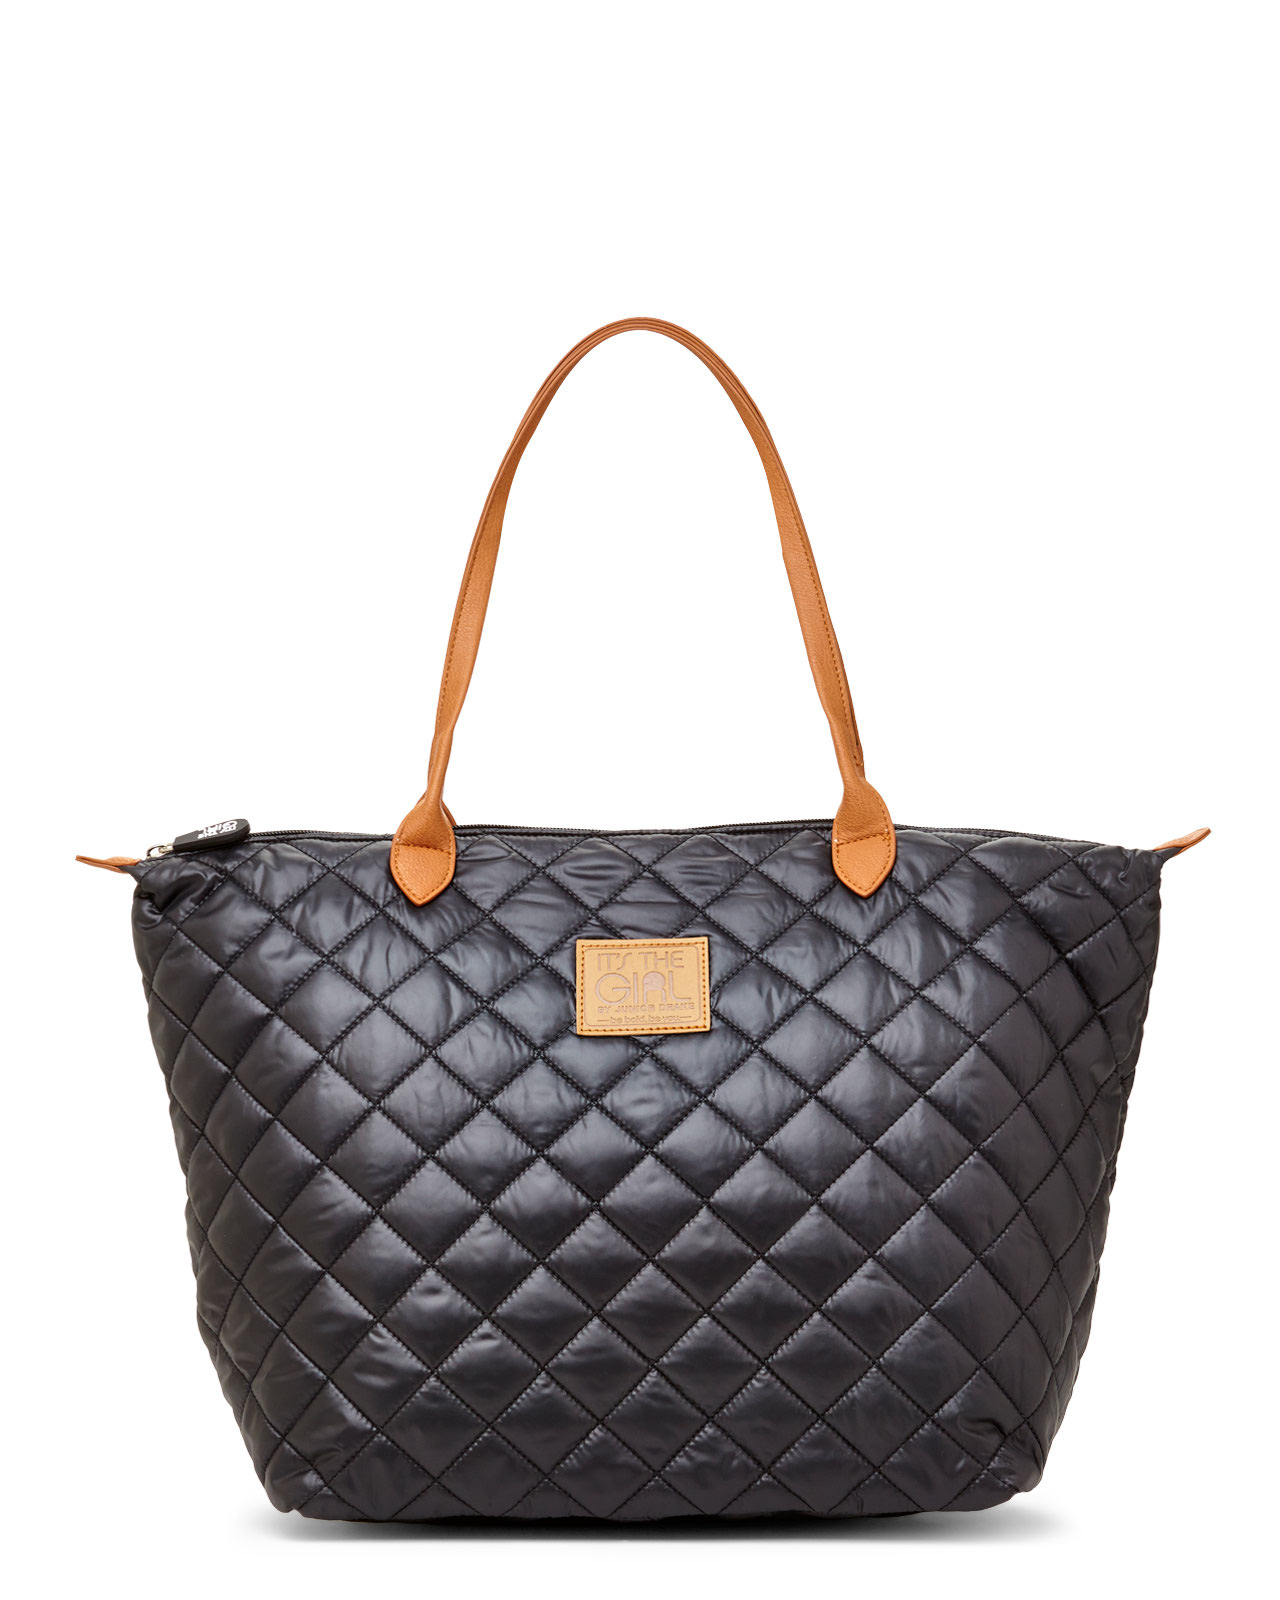 kristen handbags com black quilt beaute modalu quilted products pret a tote